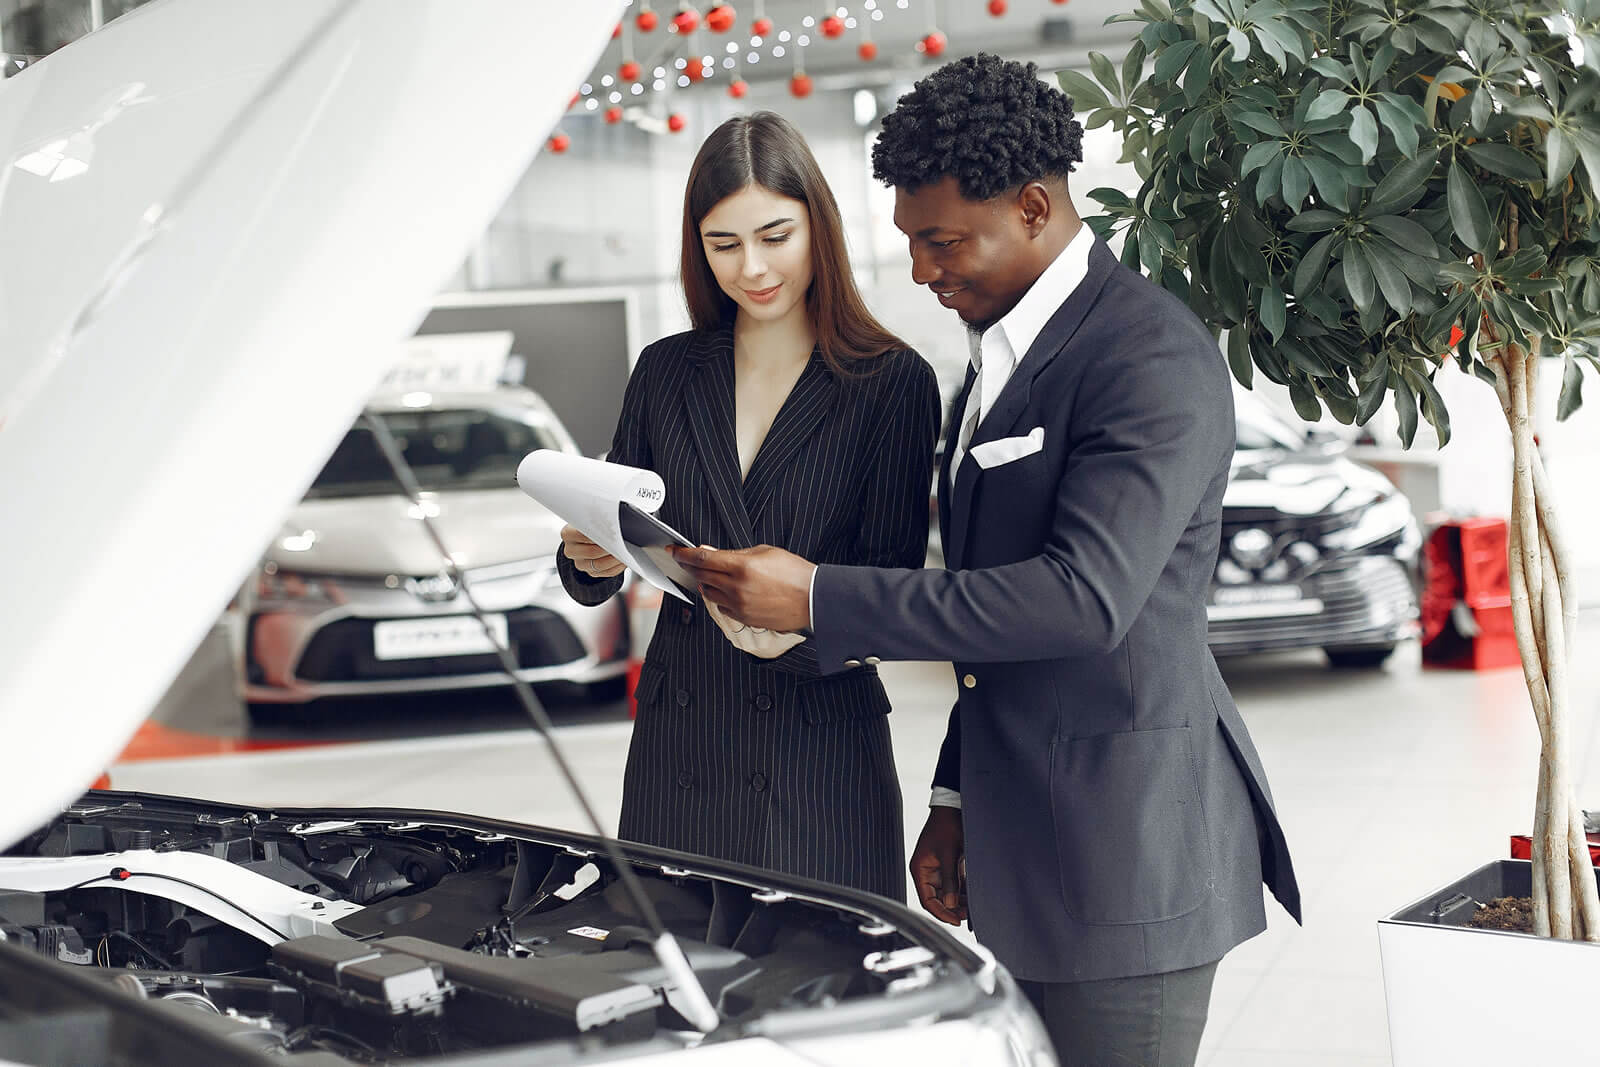 A car salesman reading documents with a consumer